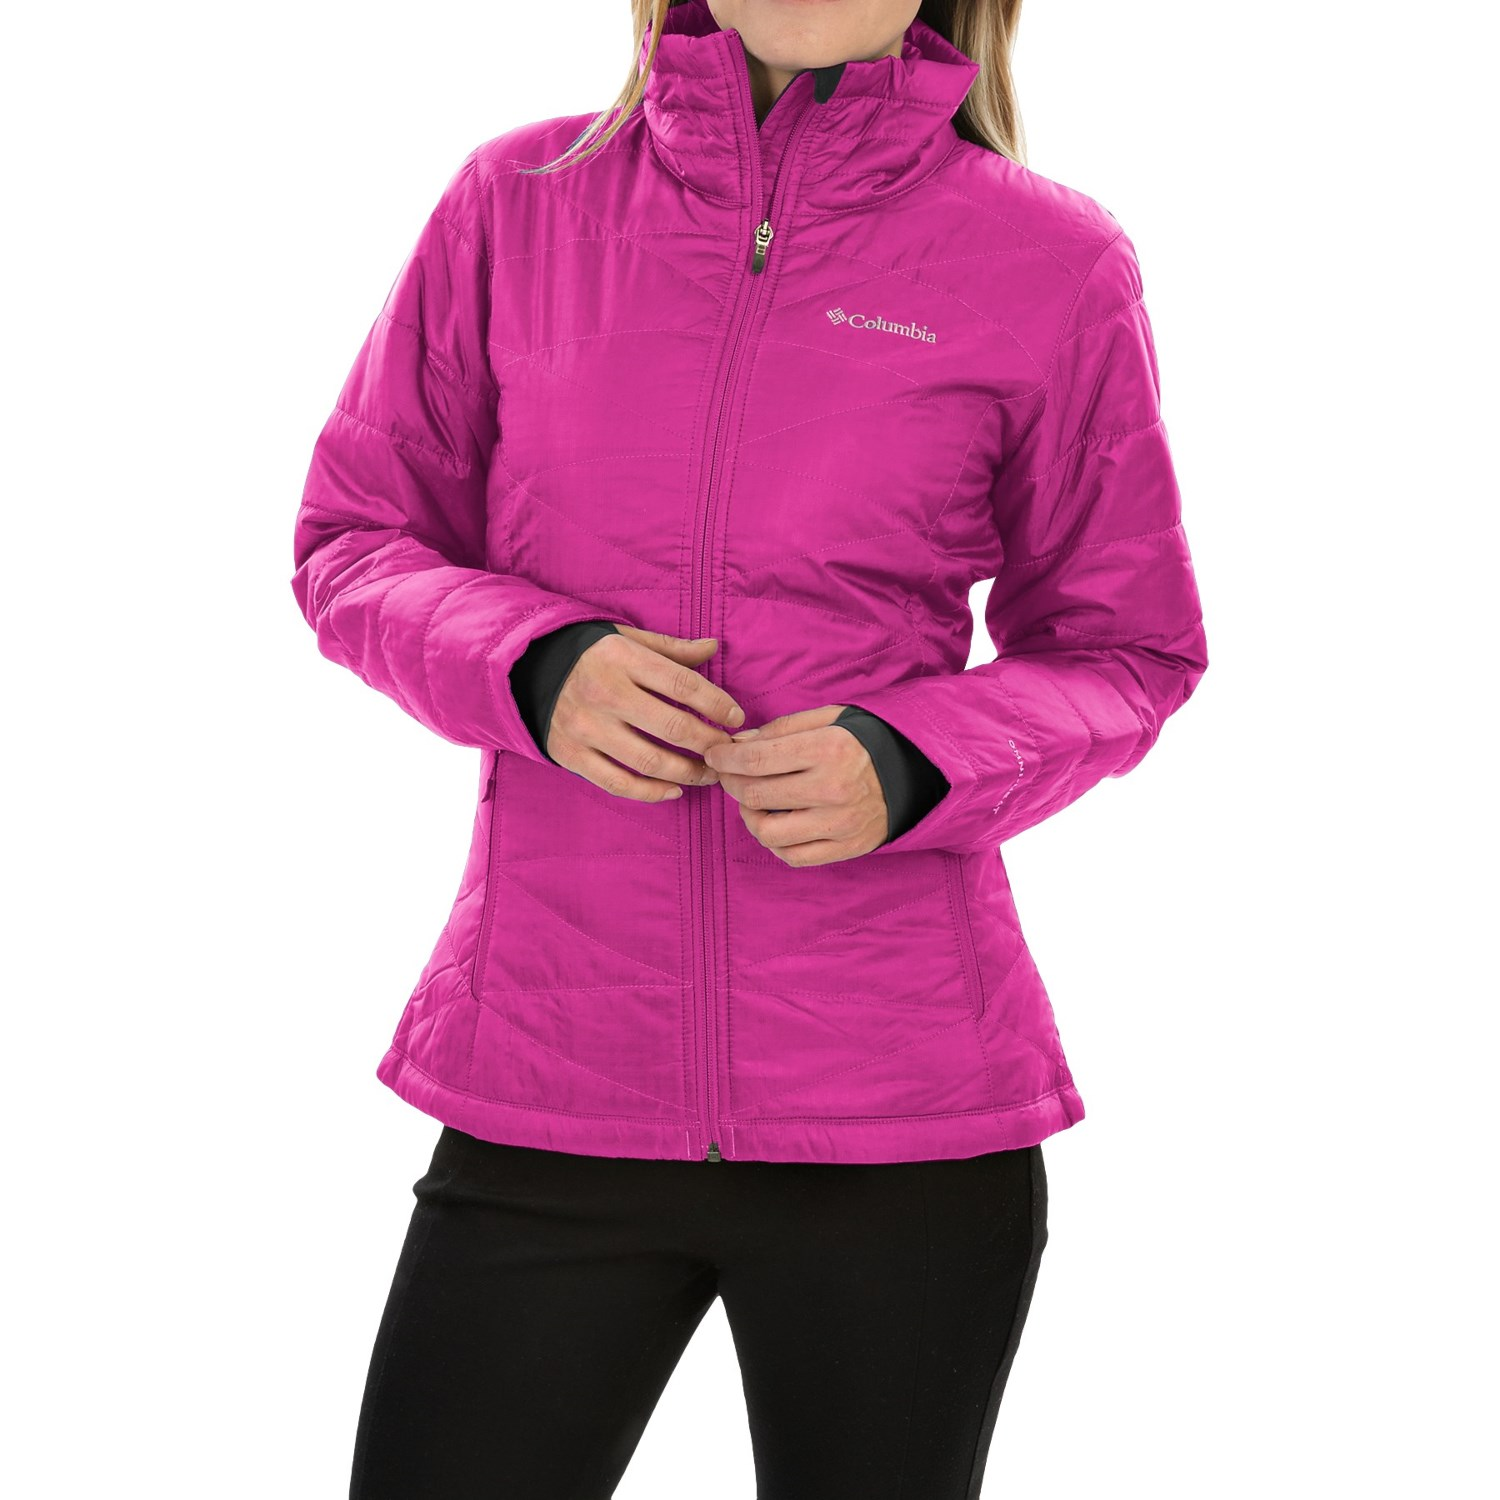 Columbia clothes for women